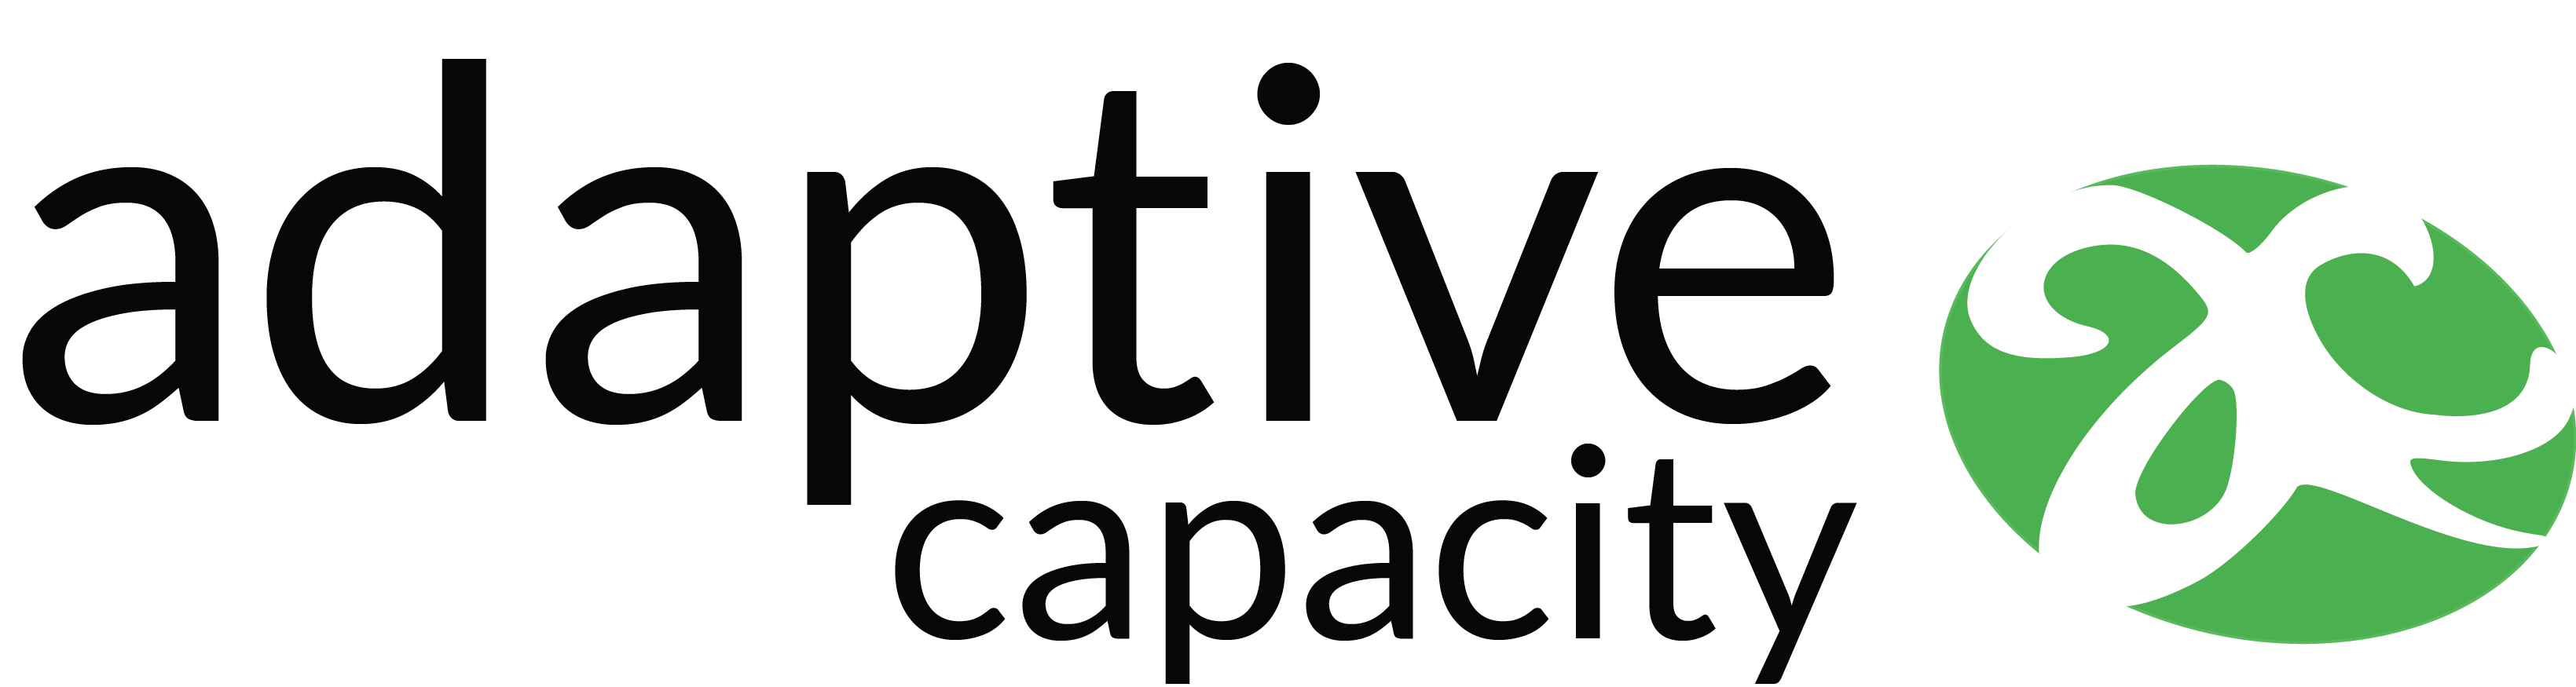 Adaptive Capacity LLC